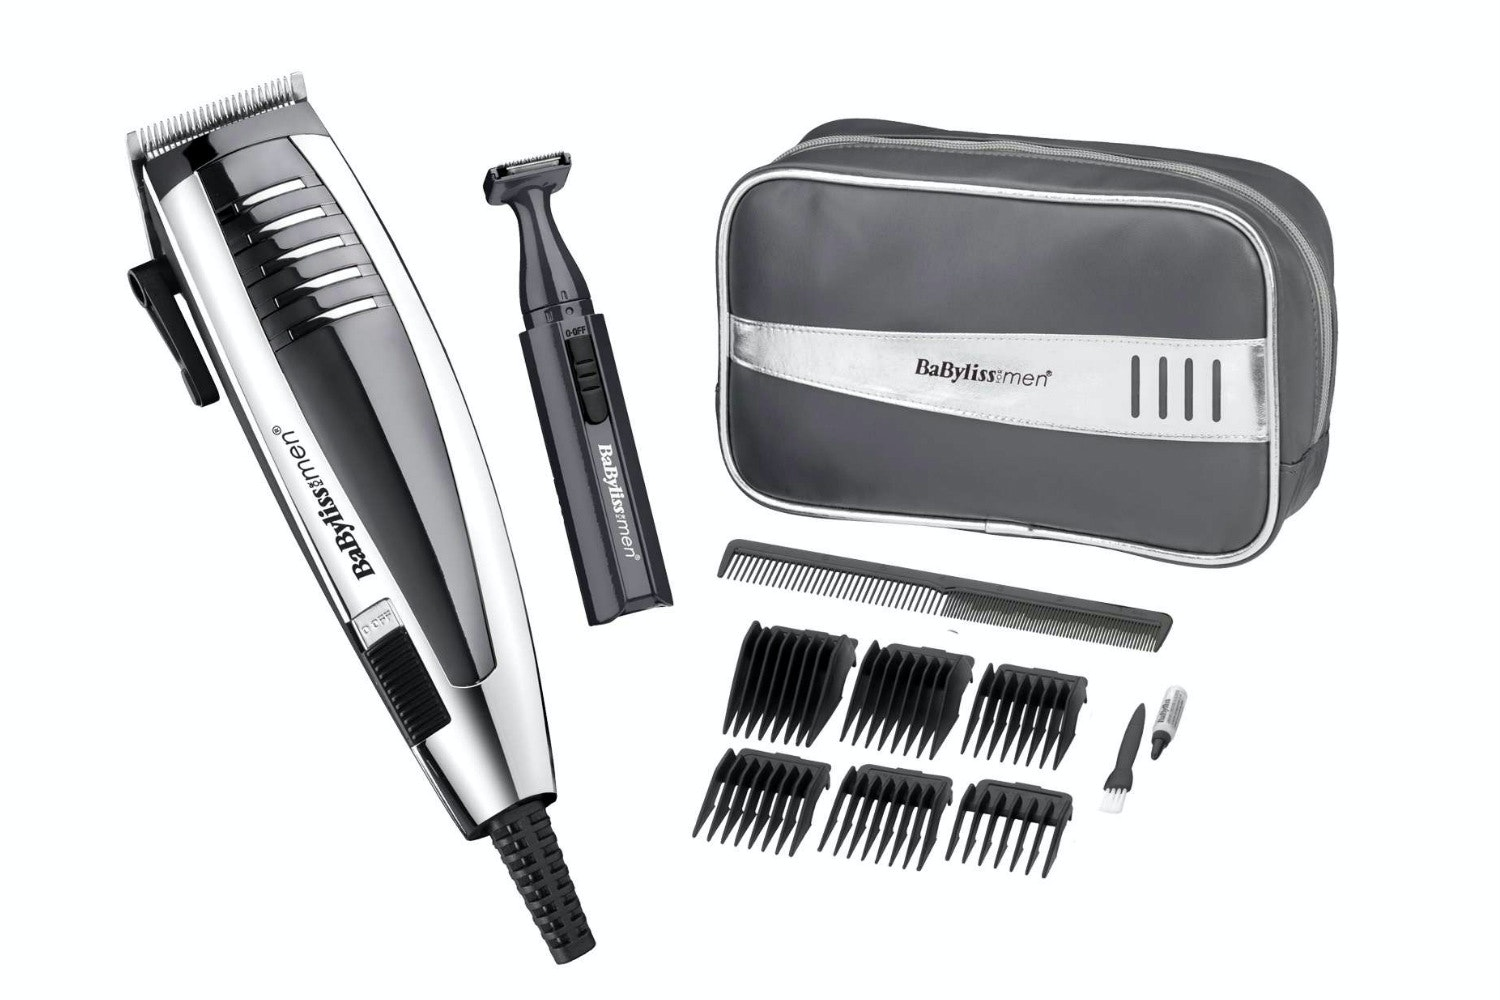 BaByliss Professional Hair Clipper Gift Set | 7448BGU